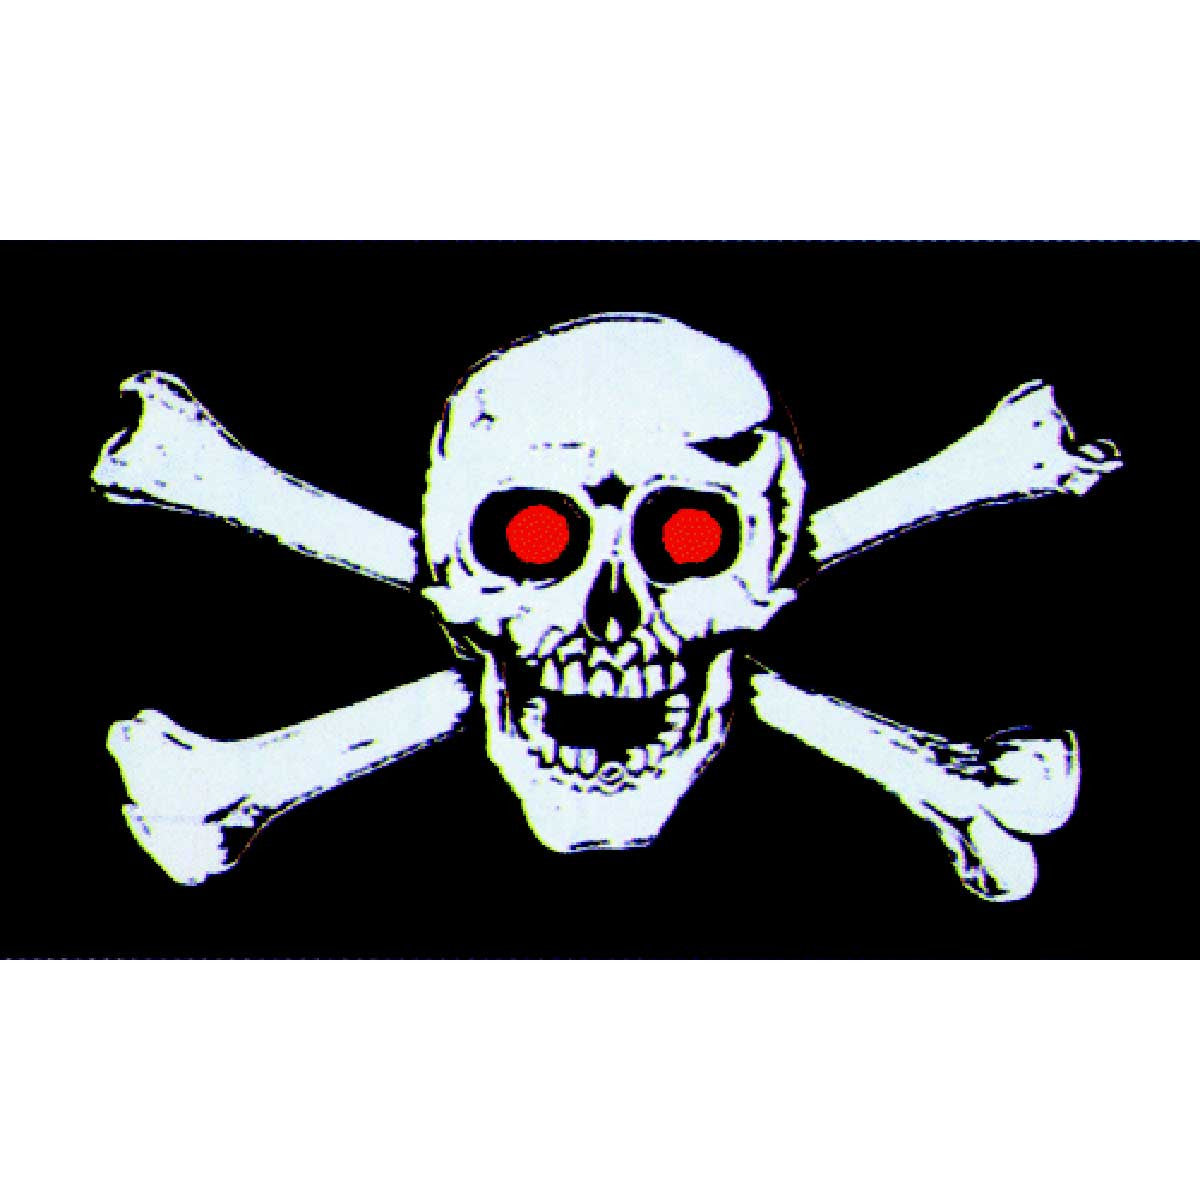 3' X 5' Flag - Pirate with Red Eyes